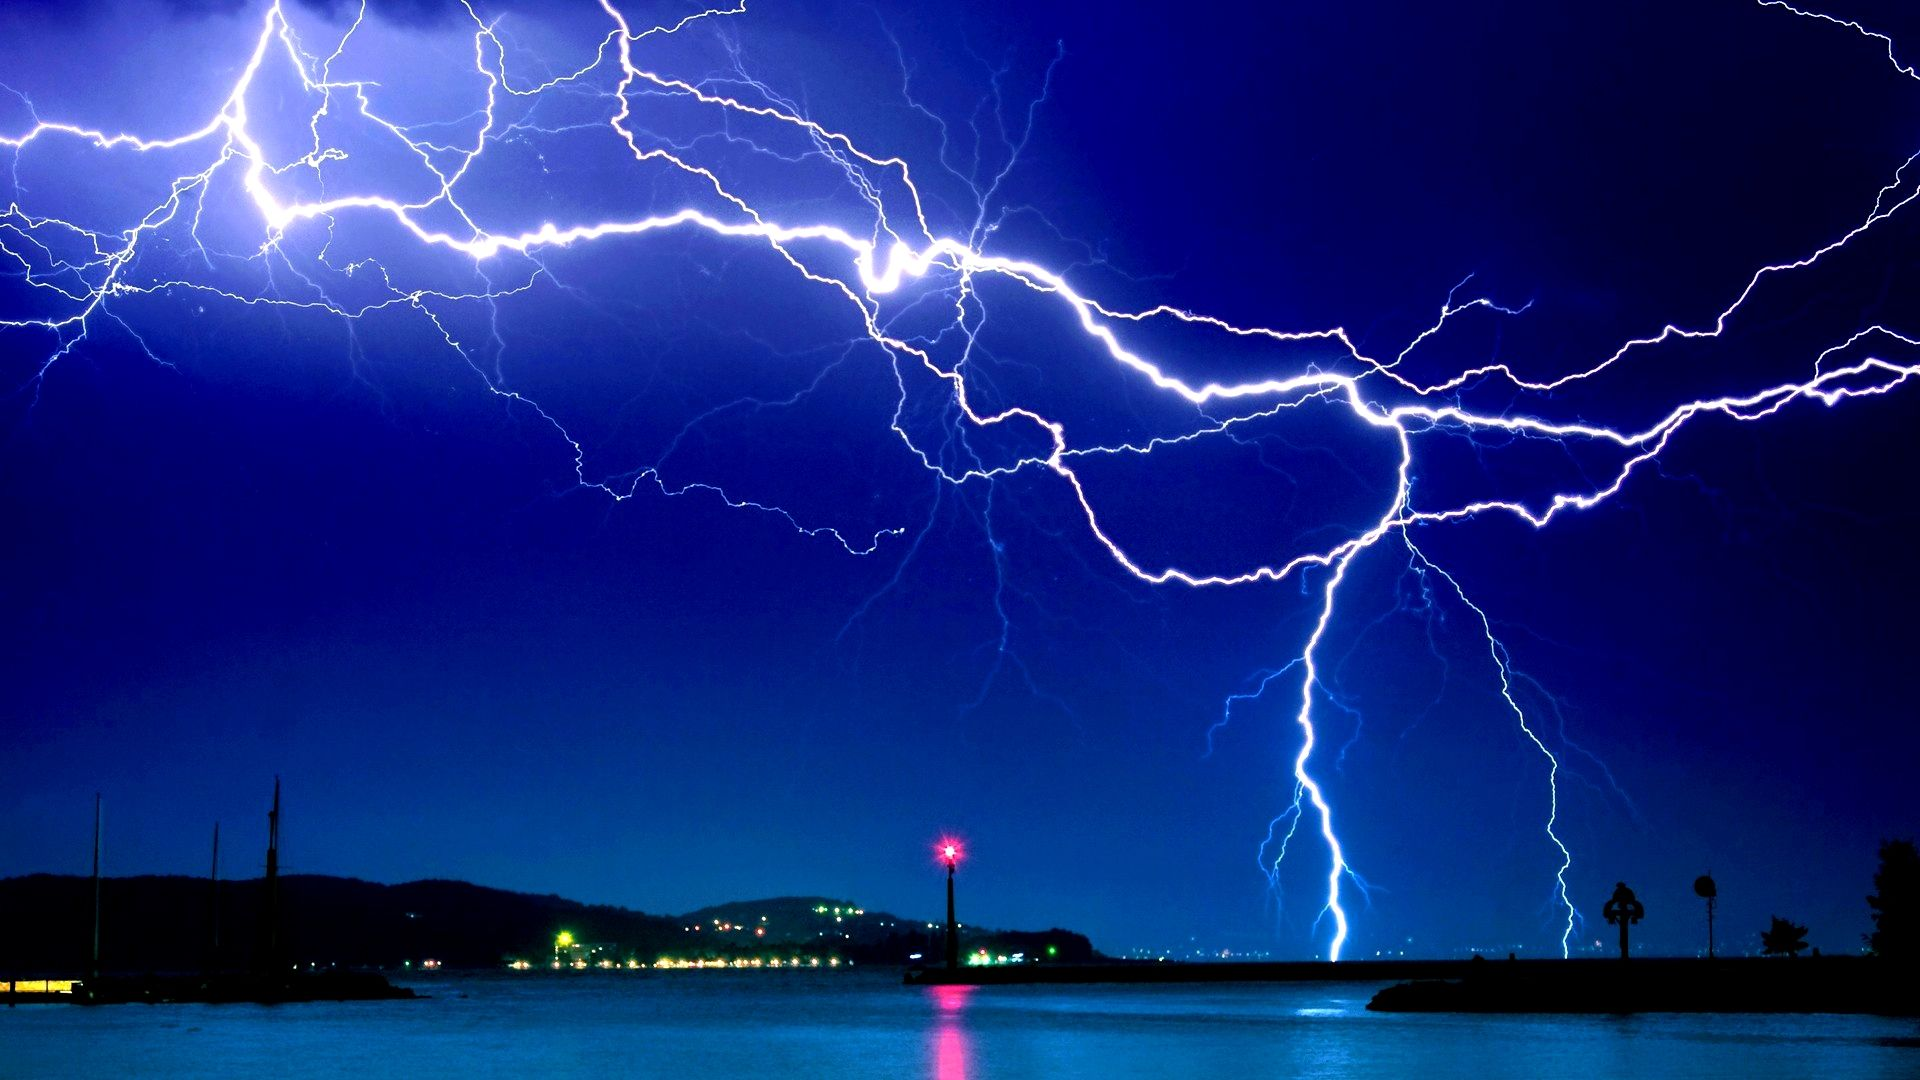 amazing lightning wallpaper for desktop high resolution wallpaper full size